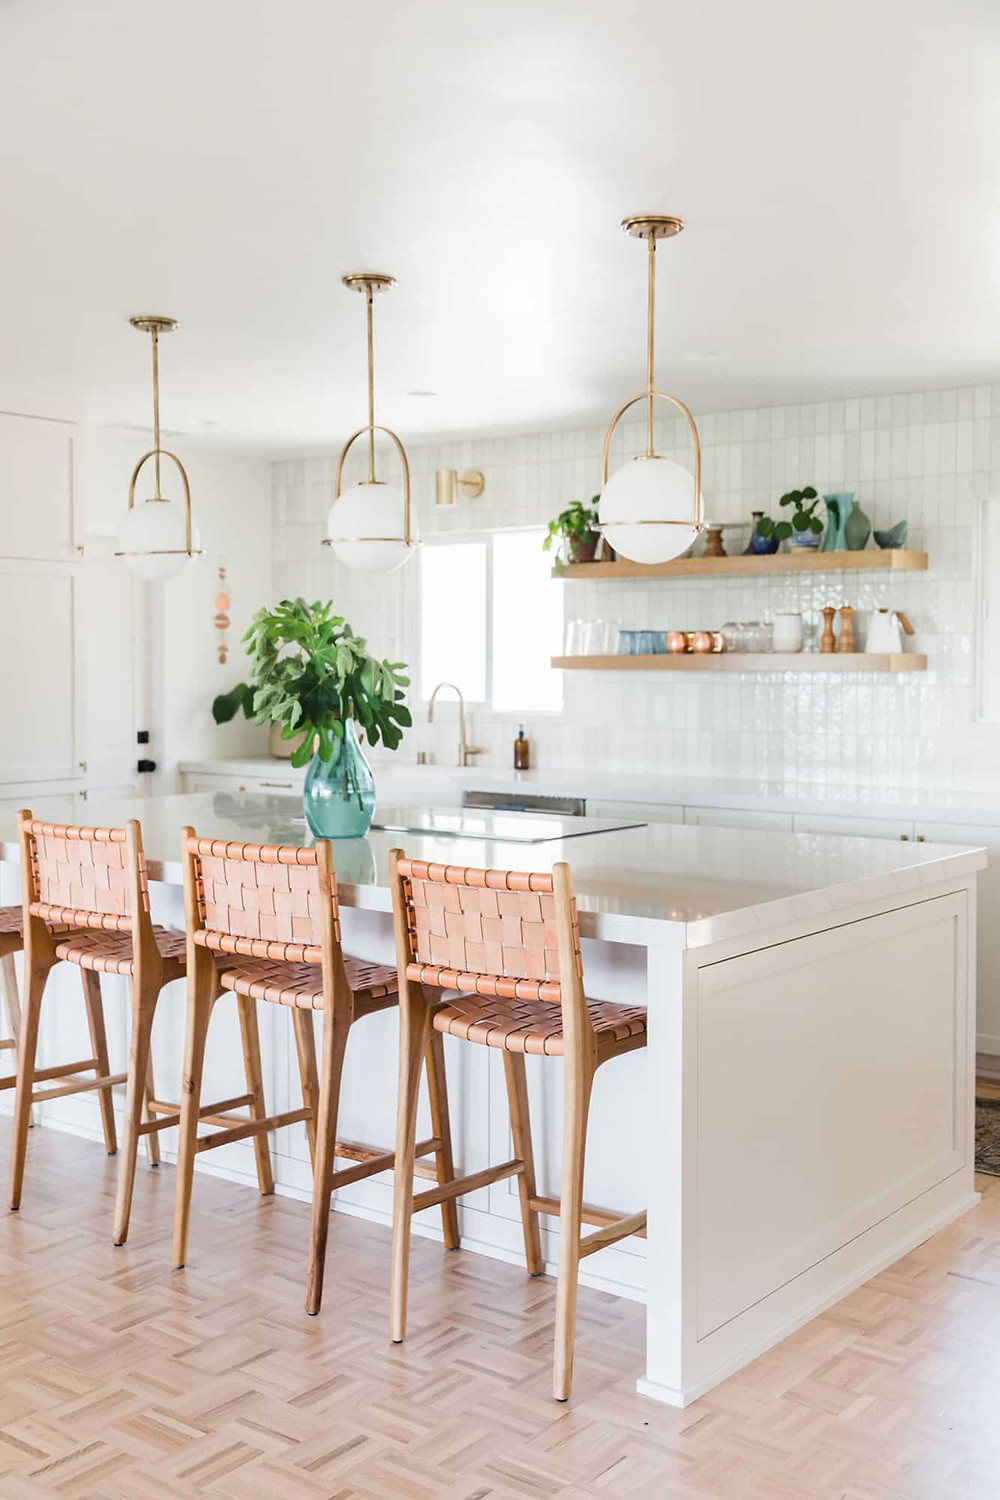 20 White Kitchen Design Ideas white cabinets in kitchen with large island and brass pendants